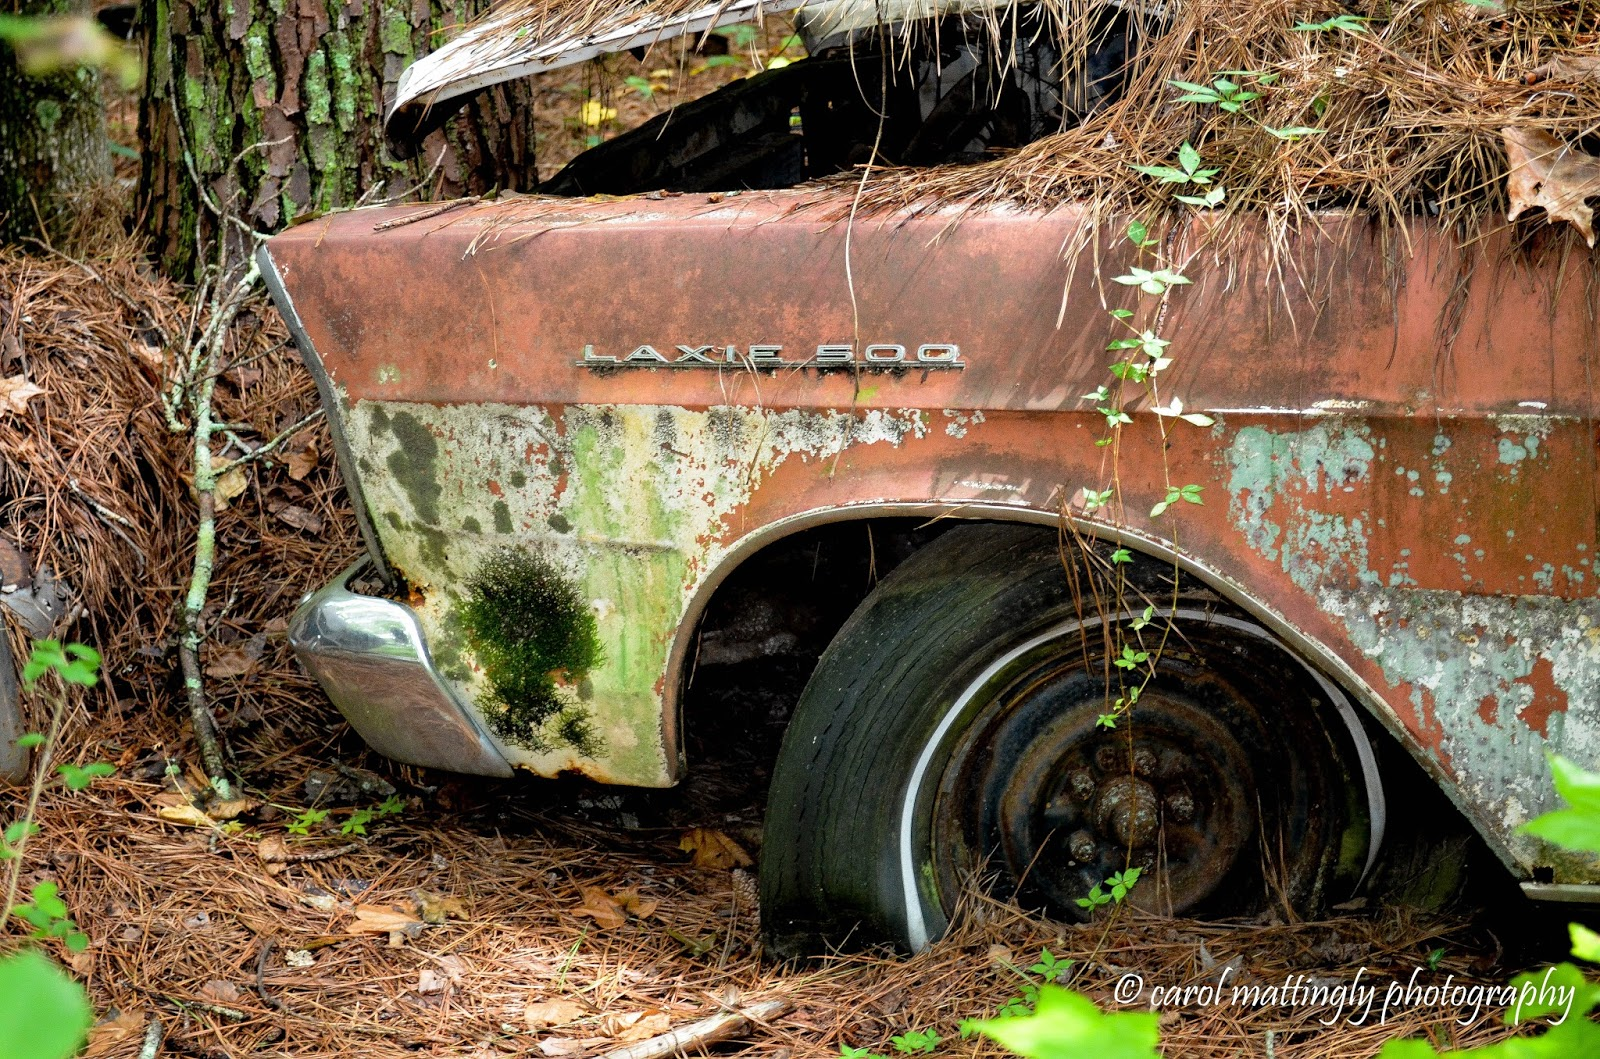 Carol Mattingly Photography: Waxing Nostalgic